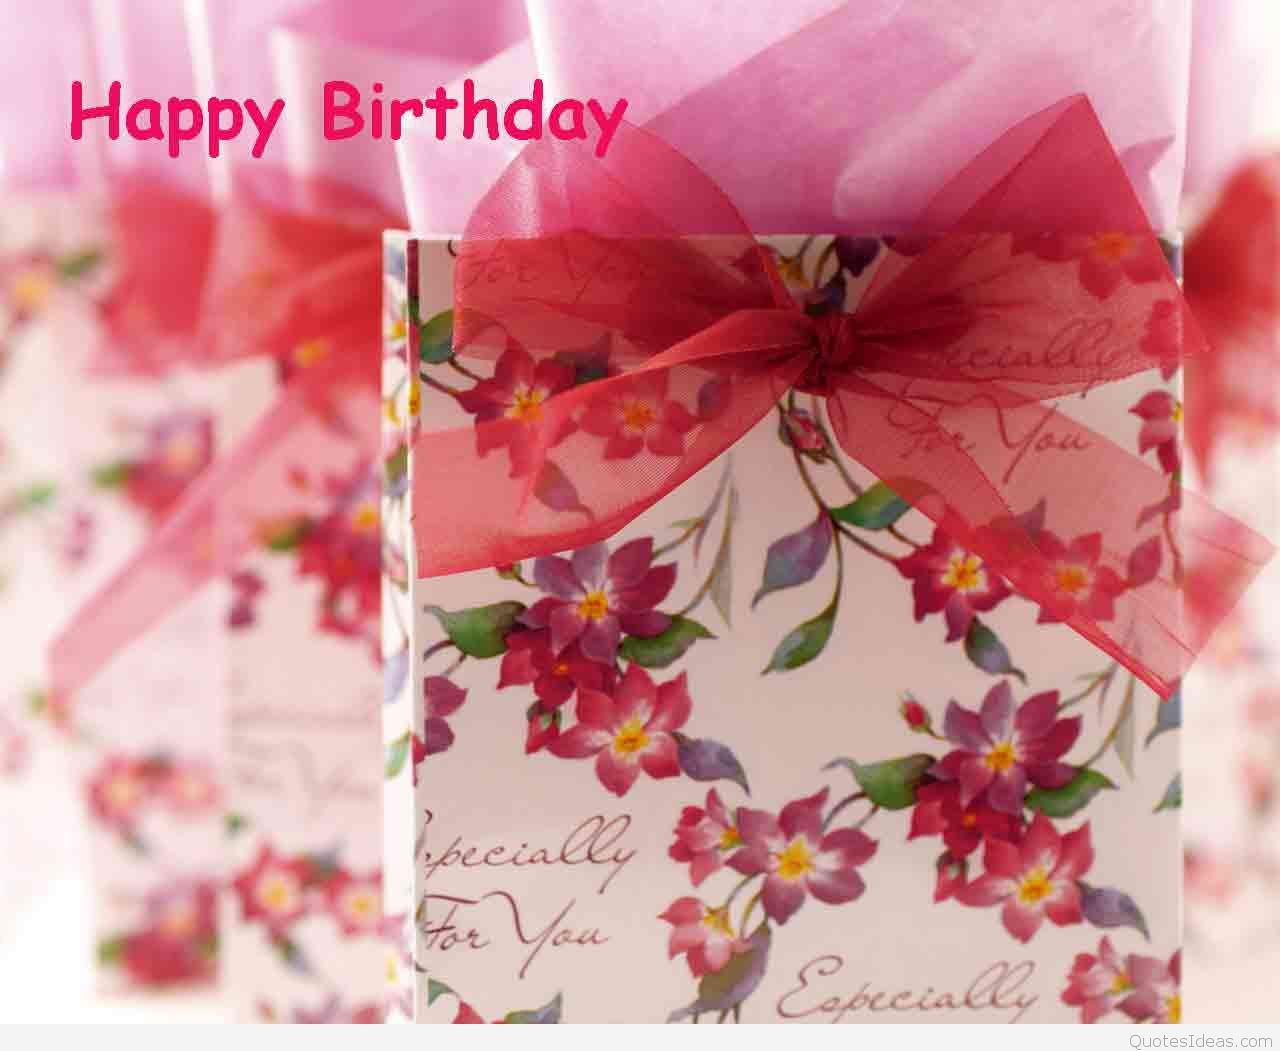 birthday wishes images free download ; Cute-Happy-Birthday-Wallpaper-With-Quotes-Free-Download